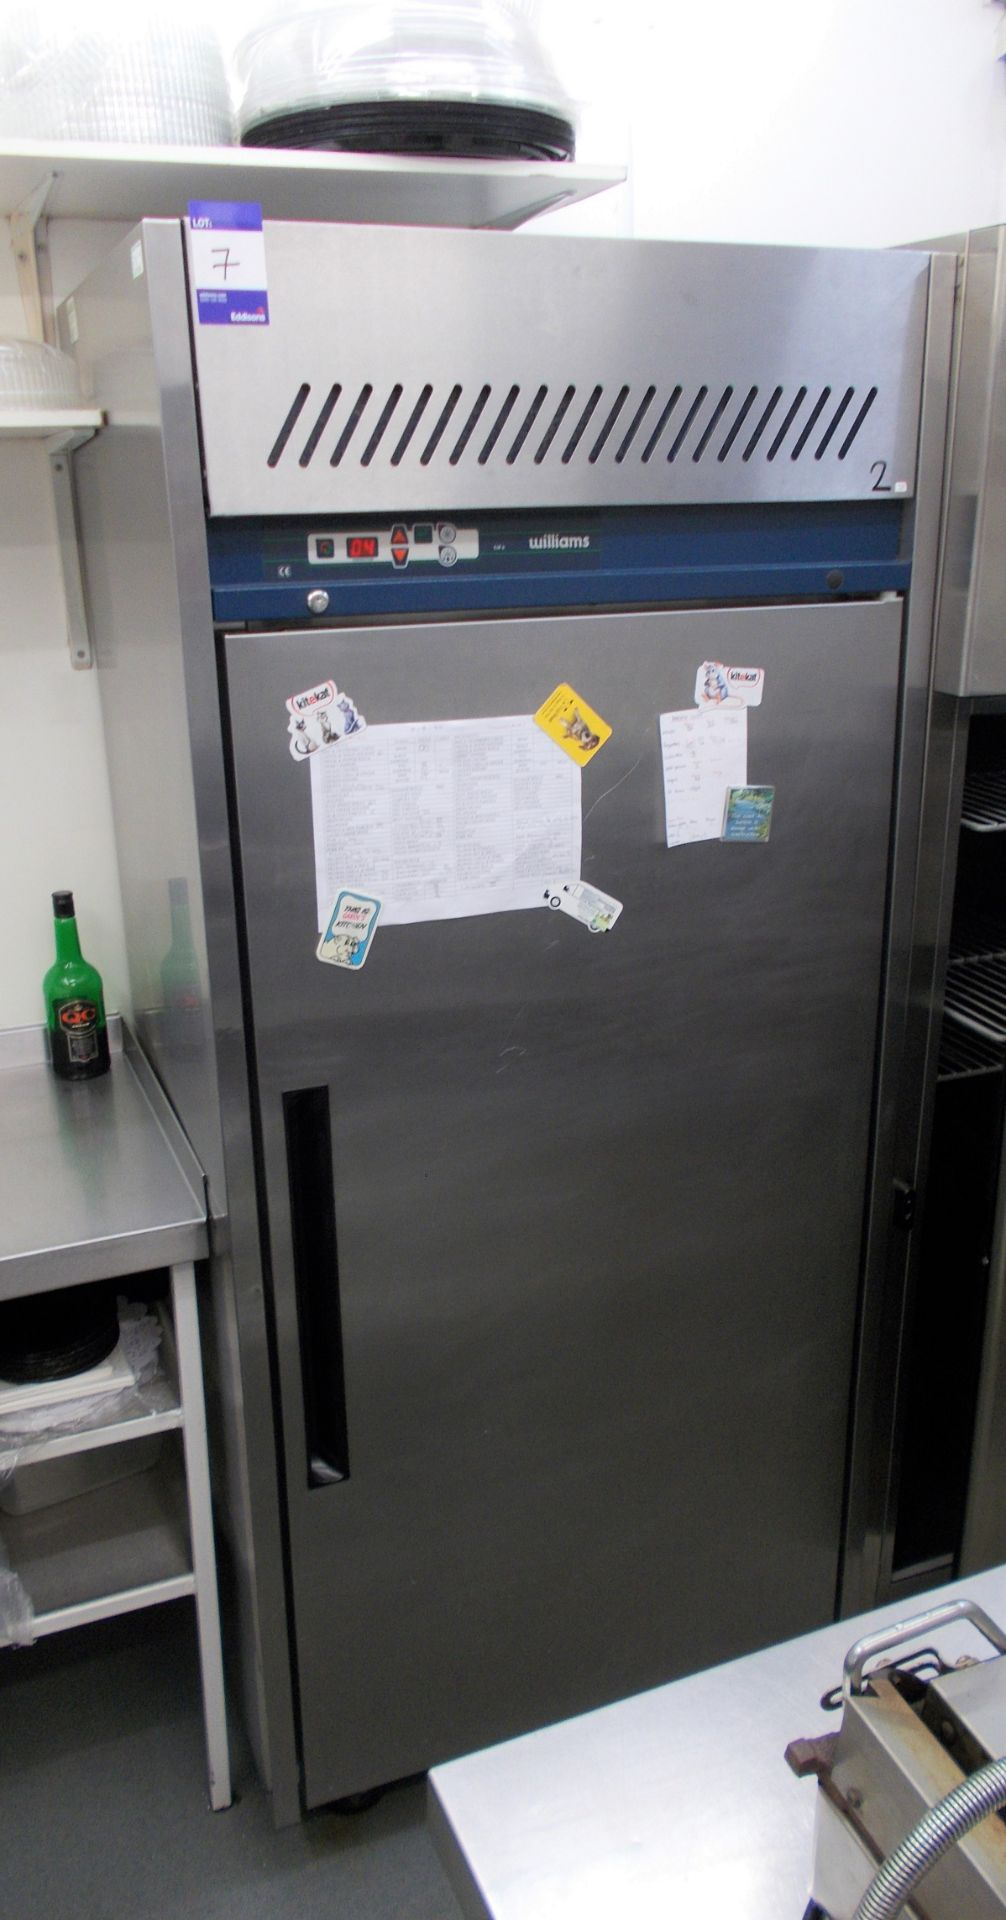 Williams upright mobile refrigerator. Dimensions: H: 6ft 5 x W: 2ft 10 x D: 2ft 3